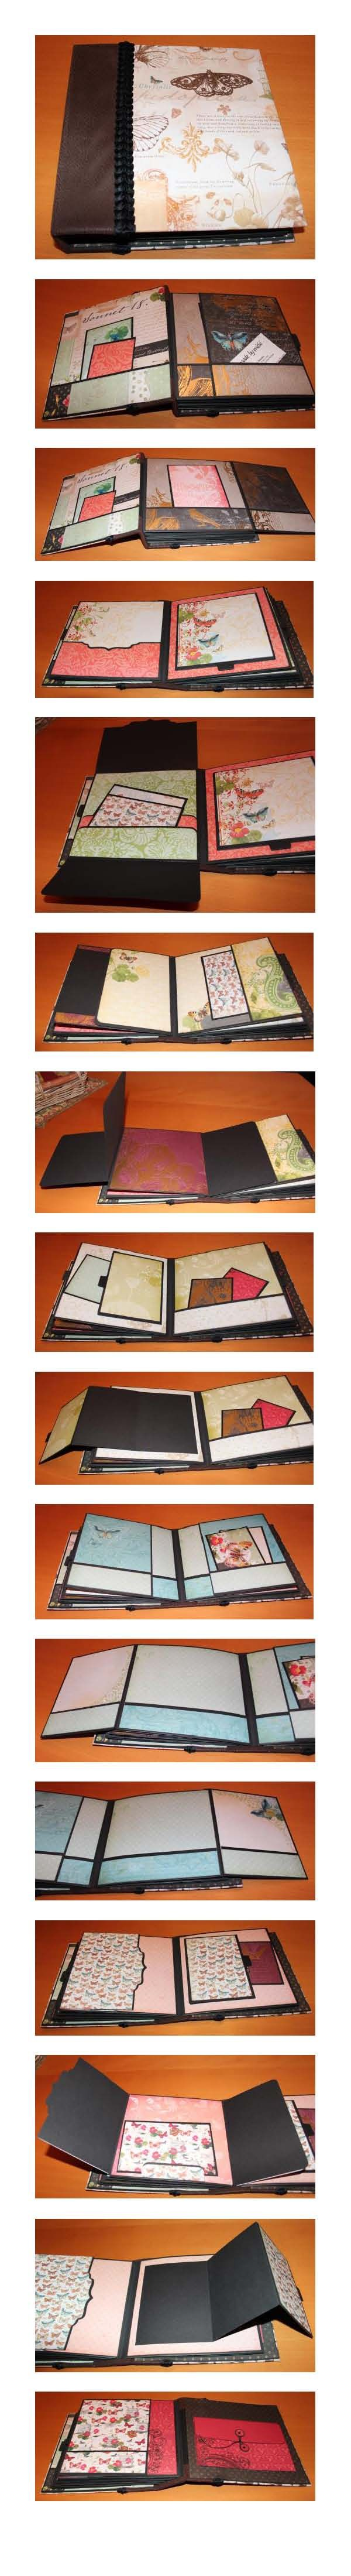 8x8 mini album using dcwv mariposa stack made by micki. Black Bedroom Furniture Sets. Home Design Ideas